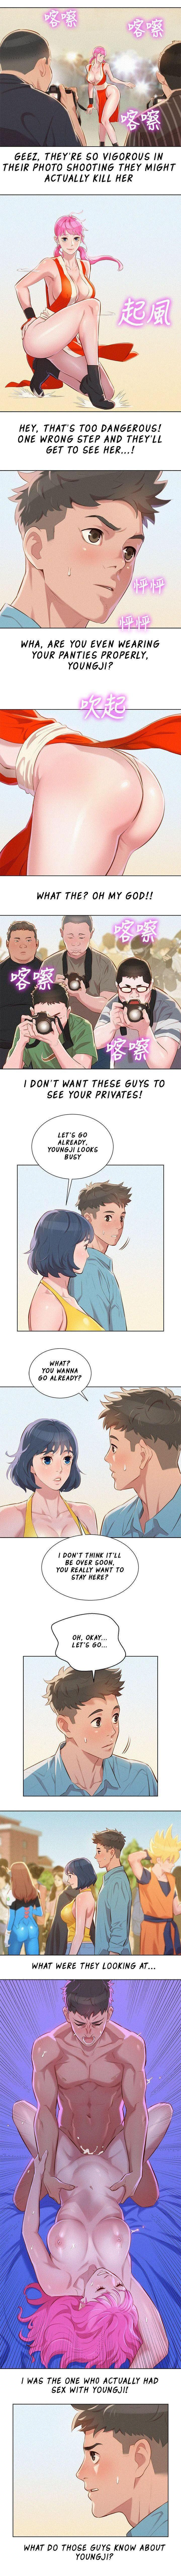 What do you Take me For? Ch.40/? 387